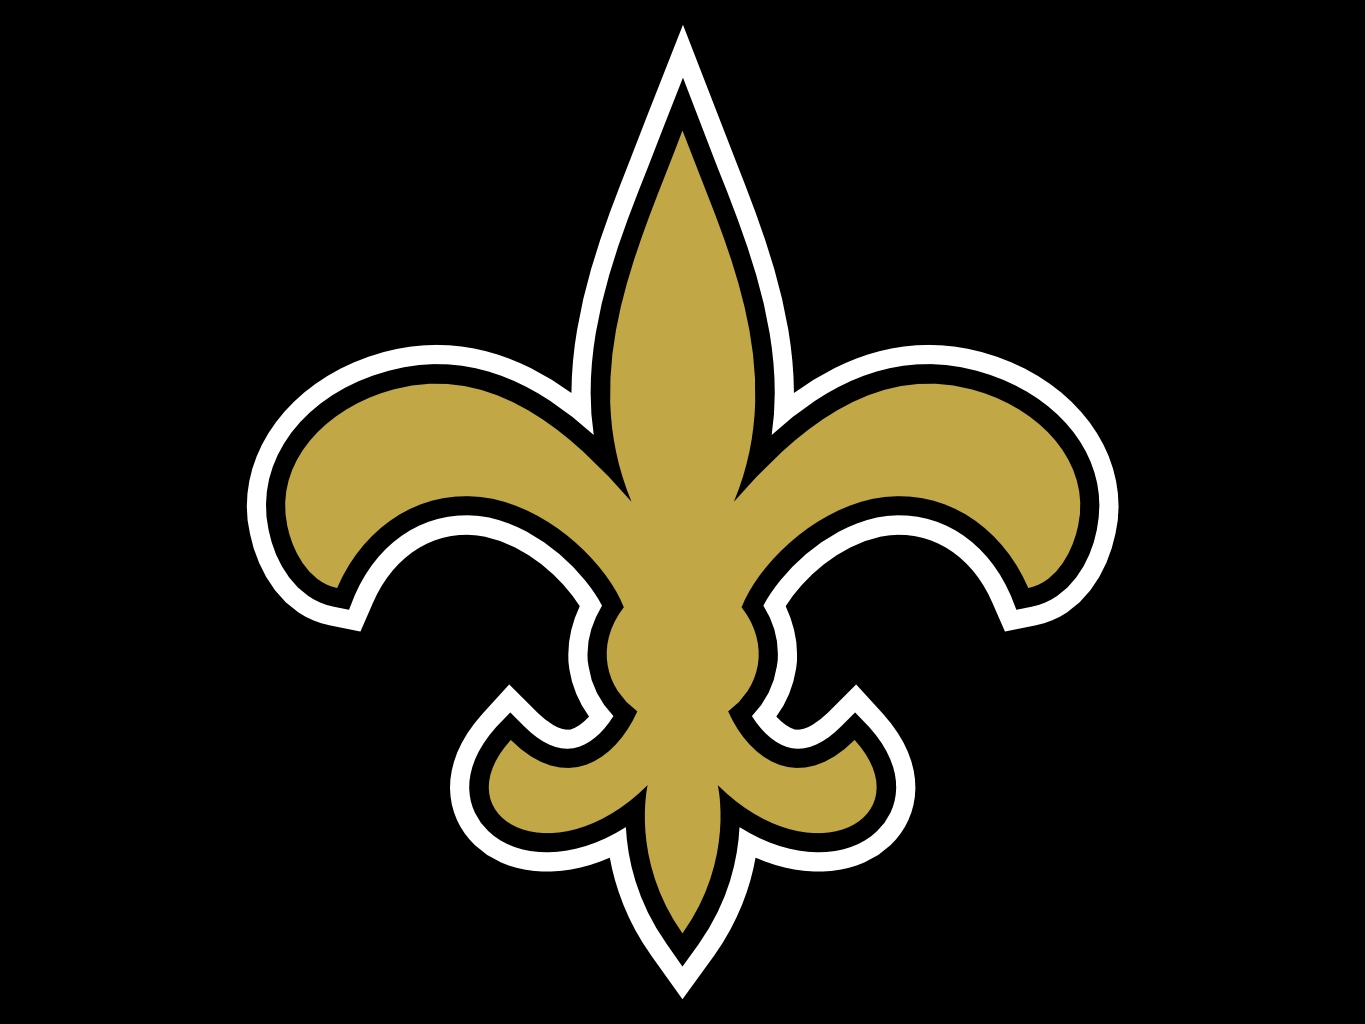 New orleans saints logo clipart png black and white download New orleans saints iphone clipart - ClipartFox png black and white download